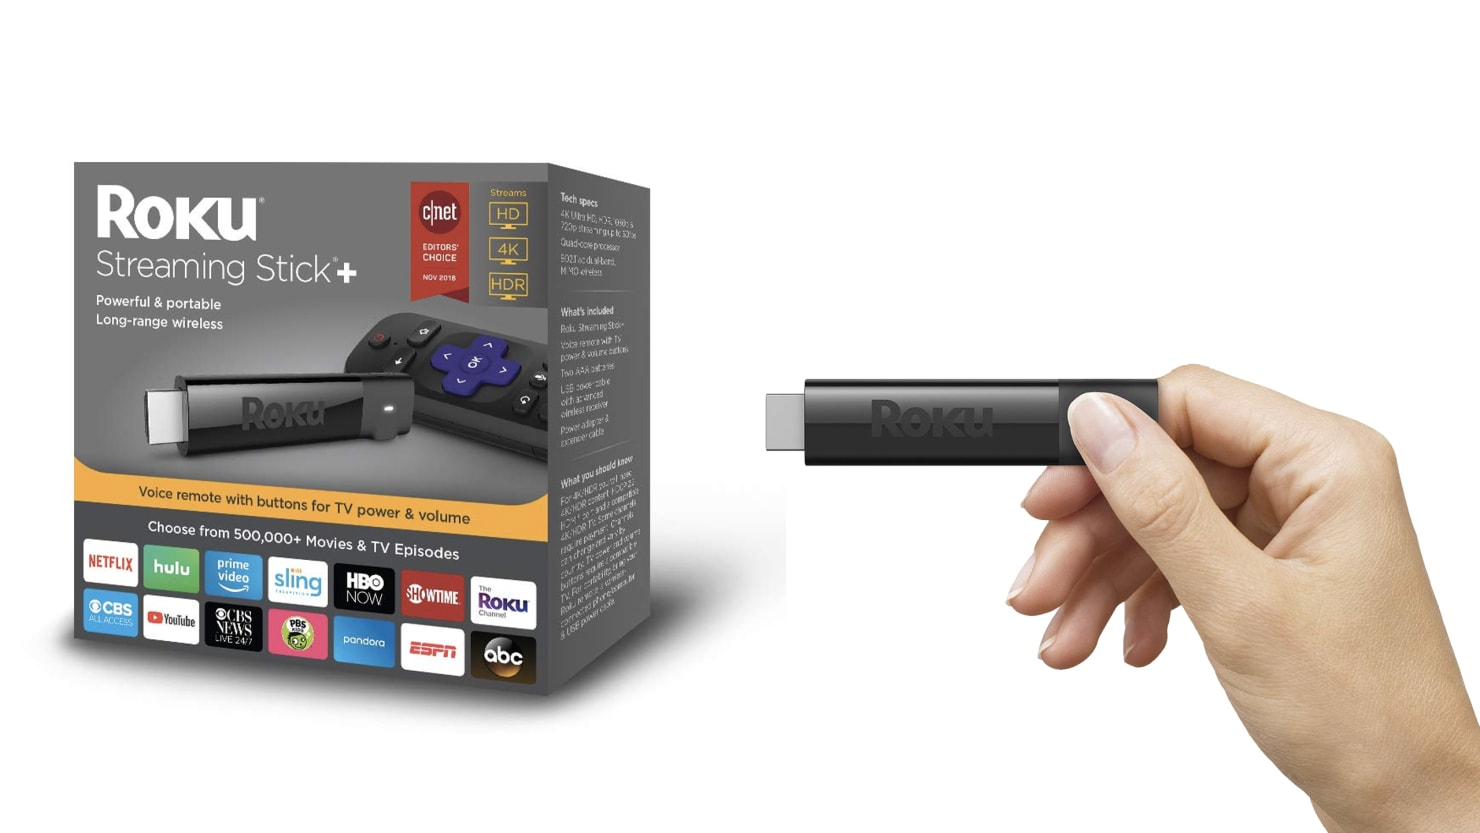 Give Your TV an HD Upgrade With a Discounted Roku Streaming Stick+